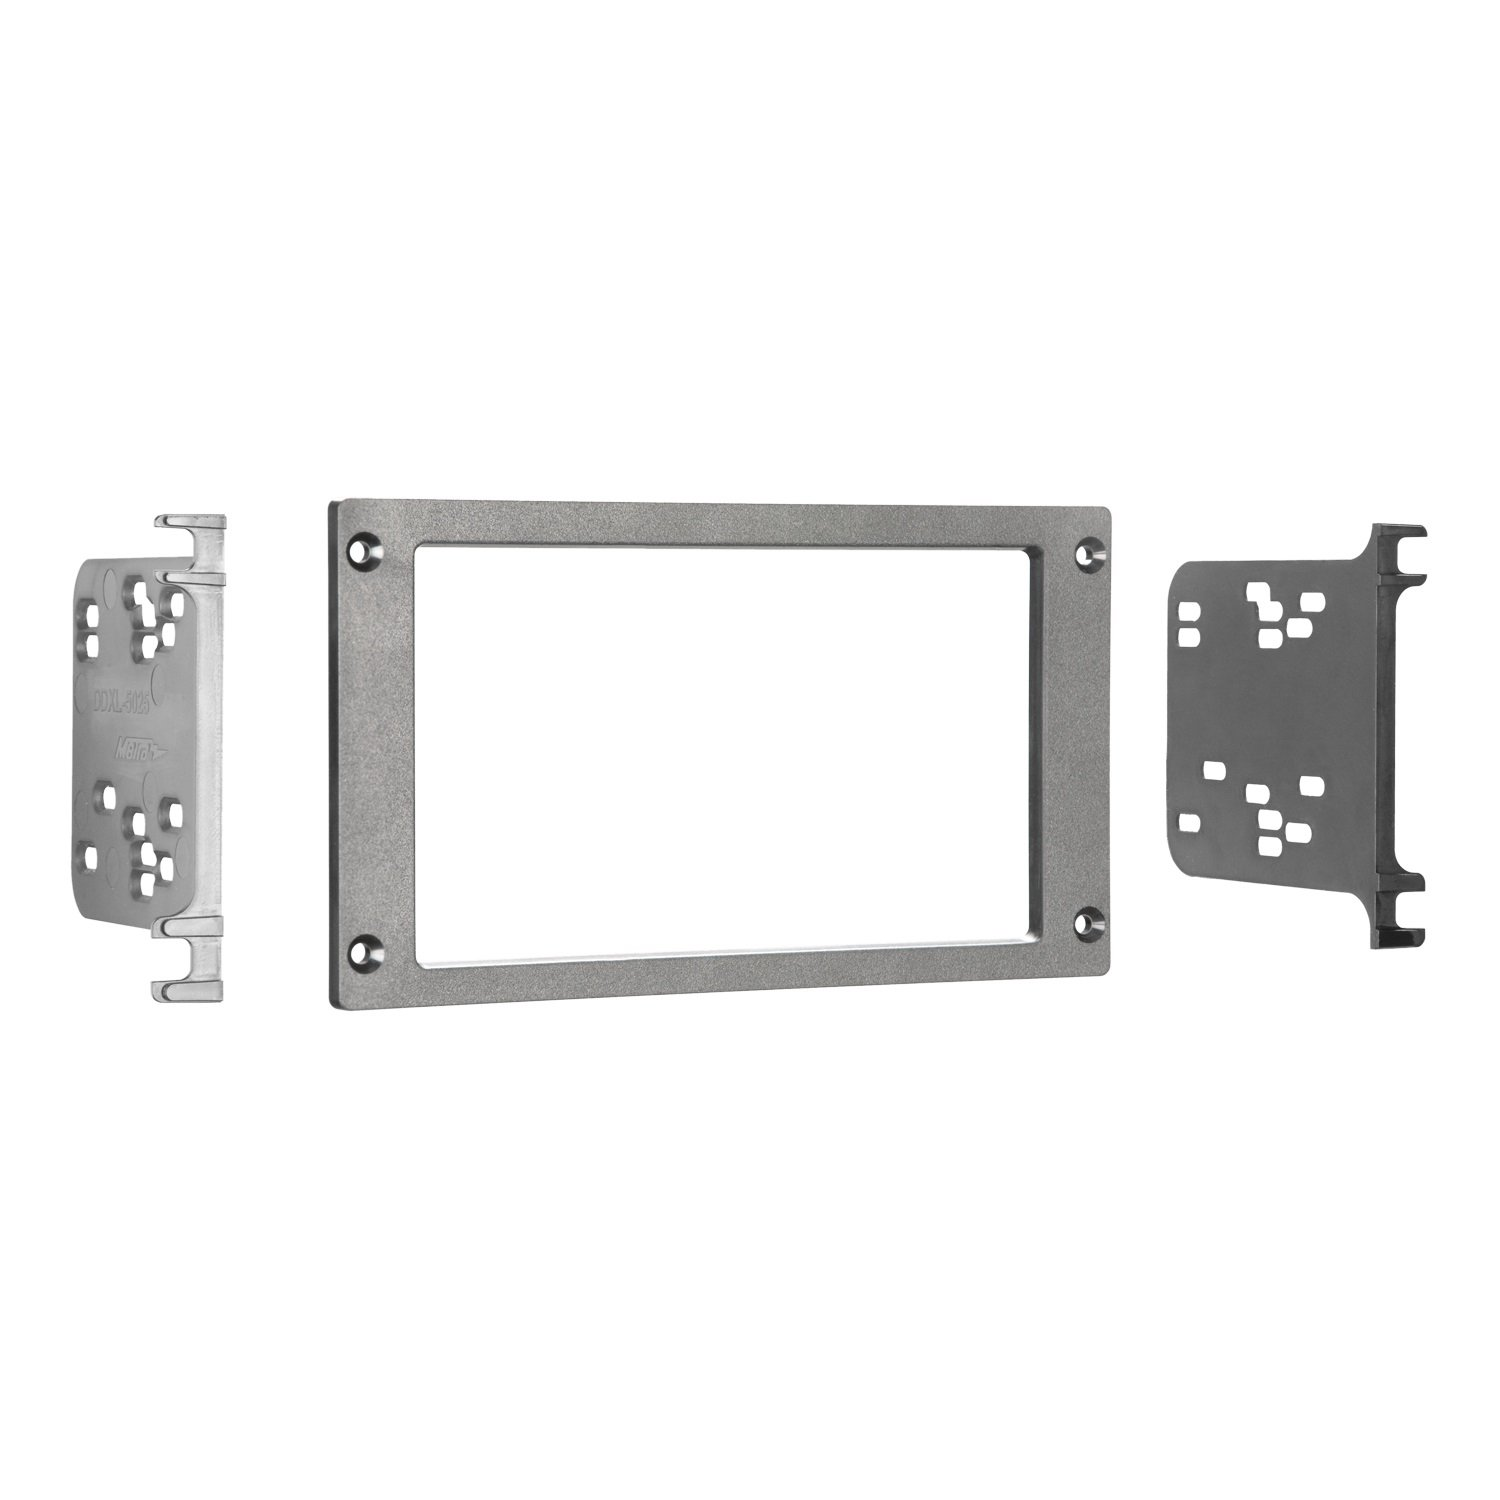 Metra 95-5025 Double DIN Installation Dash Kit for 1987-1993 Ford Mustang